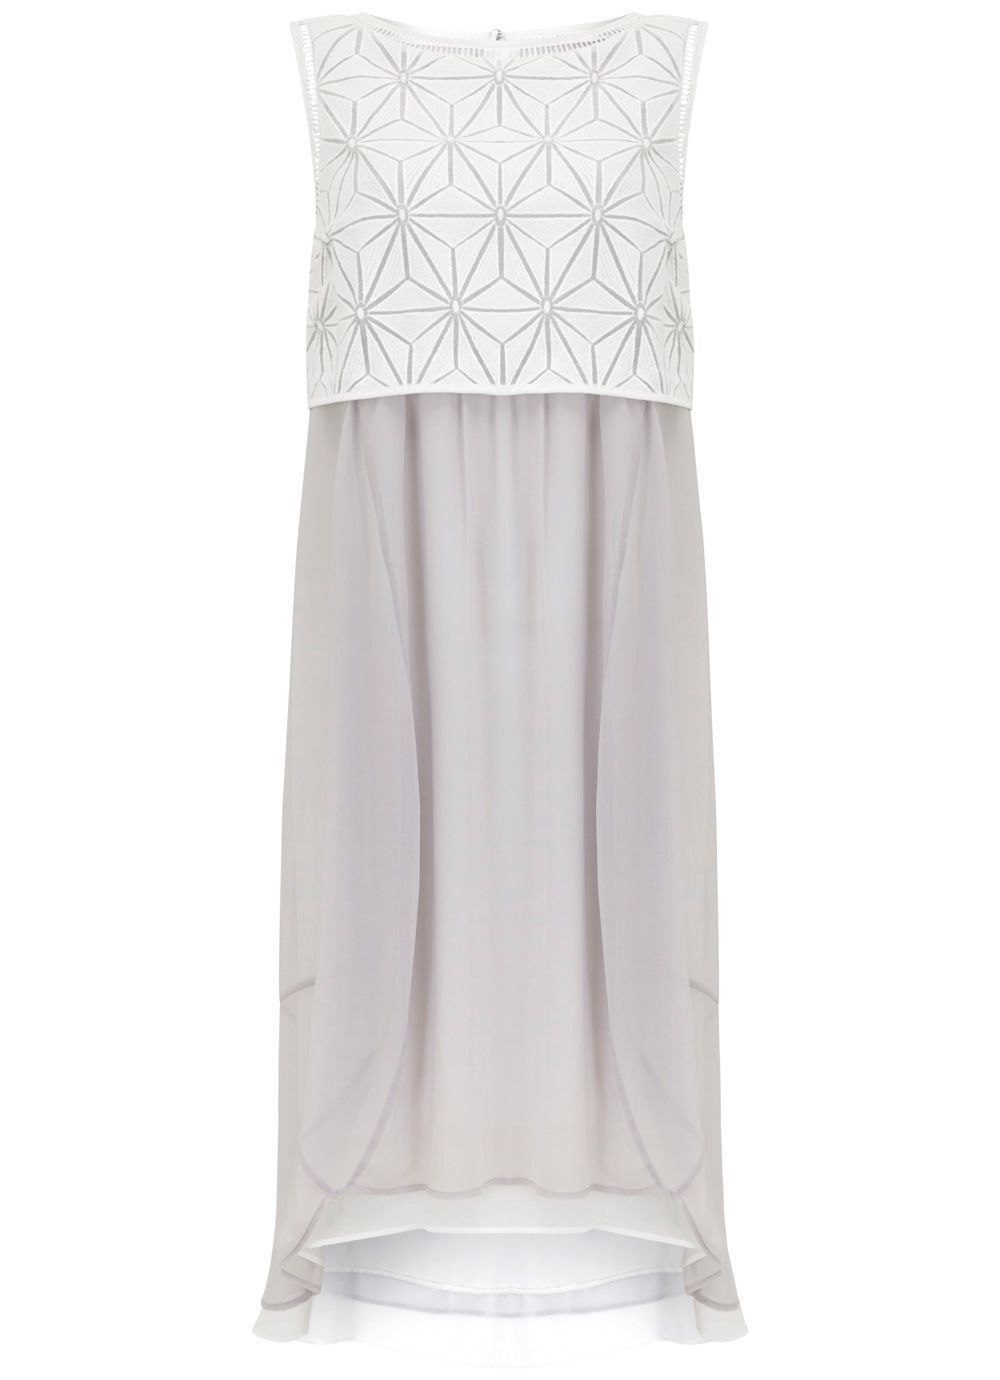 Ivory & Dove Geo Embroidered Cocoon Dress, Multi Coloured - style: shift; sleeve style: sleeveless; secondary colour: white; predominant colour: mid grey; length: on the knee; fit: soft a-line; fibres: polyester/polyamide - 100%; occasions: occasion; neckline: crew; sleeve length: sleeveless; texture group: sheer fabrics/chiffon/organza etc.; pattern type: fabric; pattern size: standard; pattern: patterned/print; embellishment: lace; season: s/s 2016; wardrobe: event; embellishment location: bust